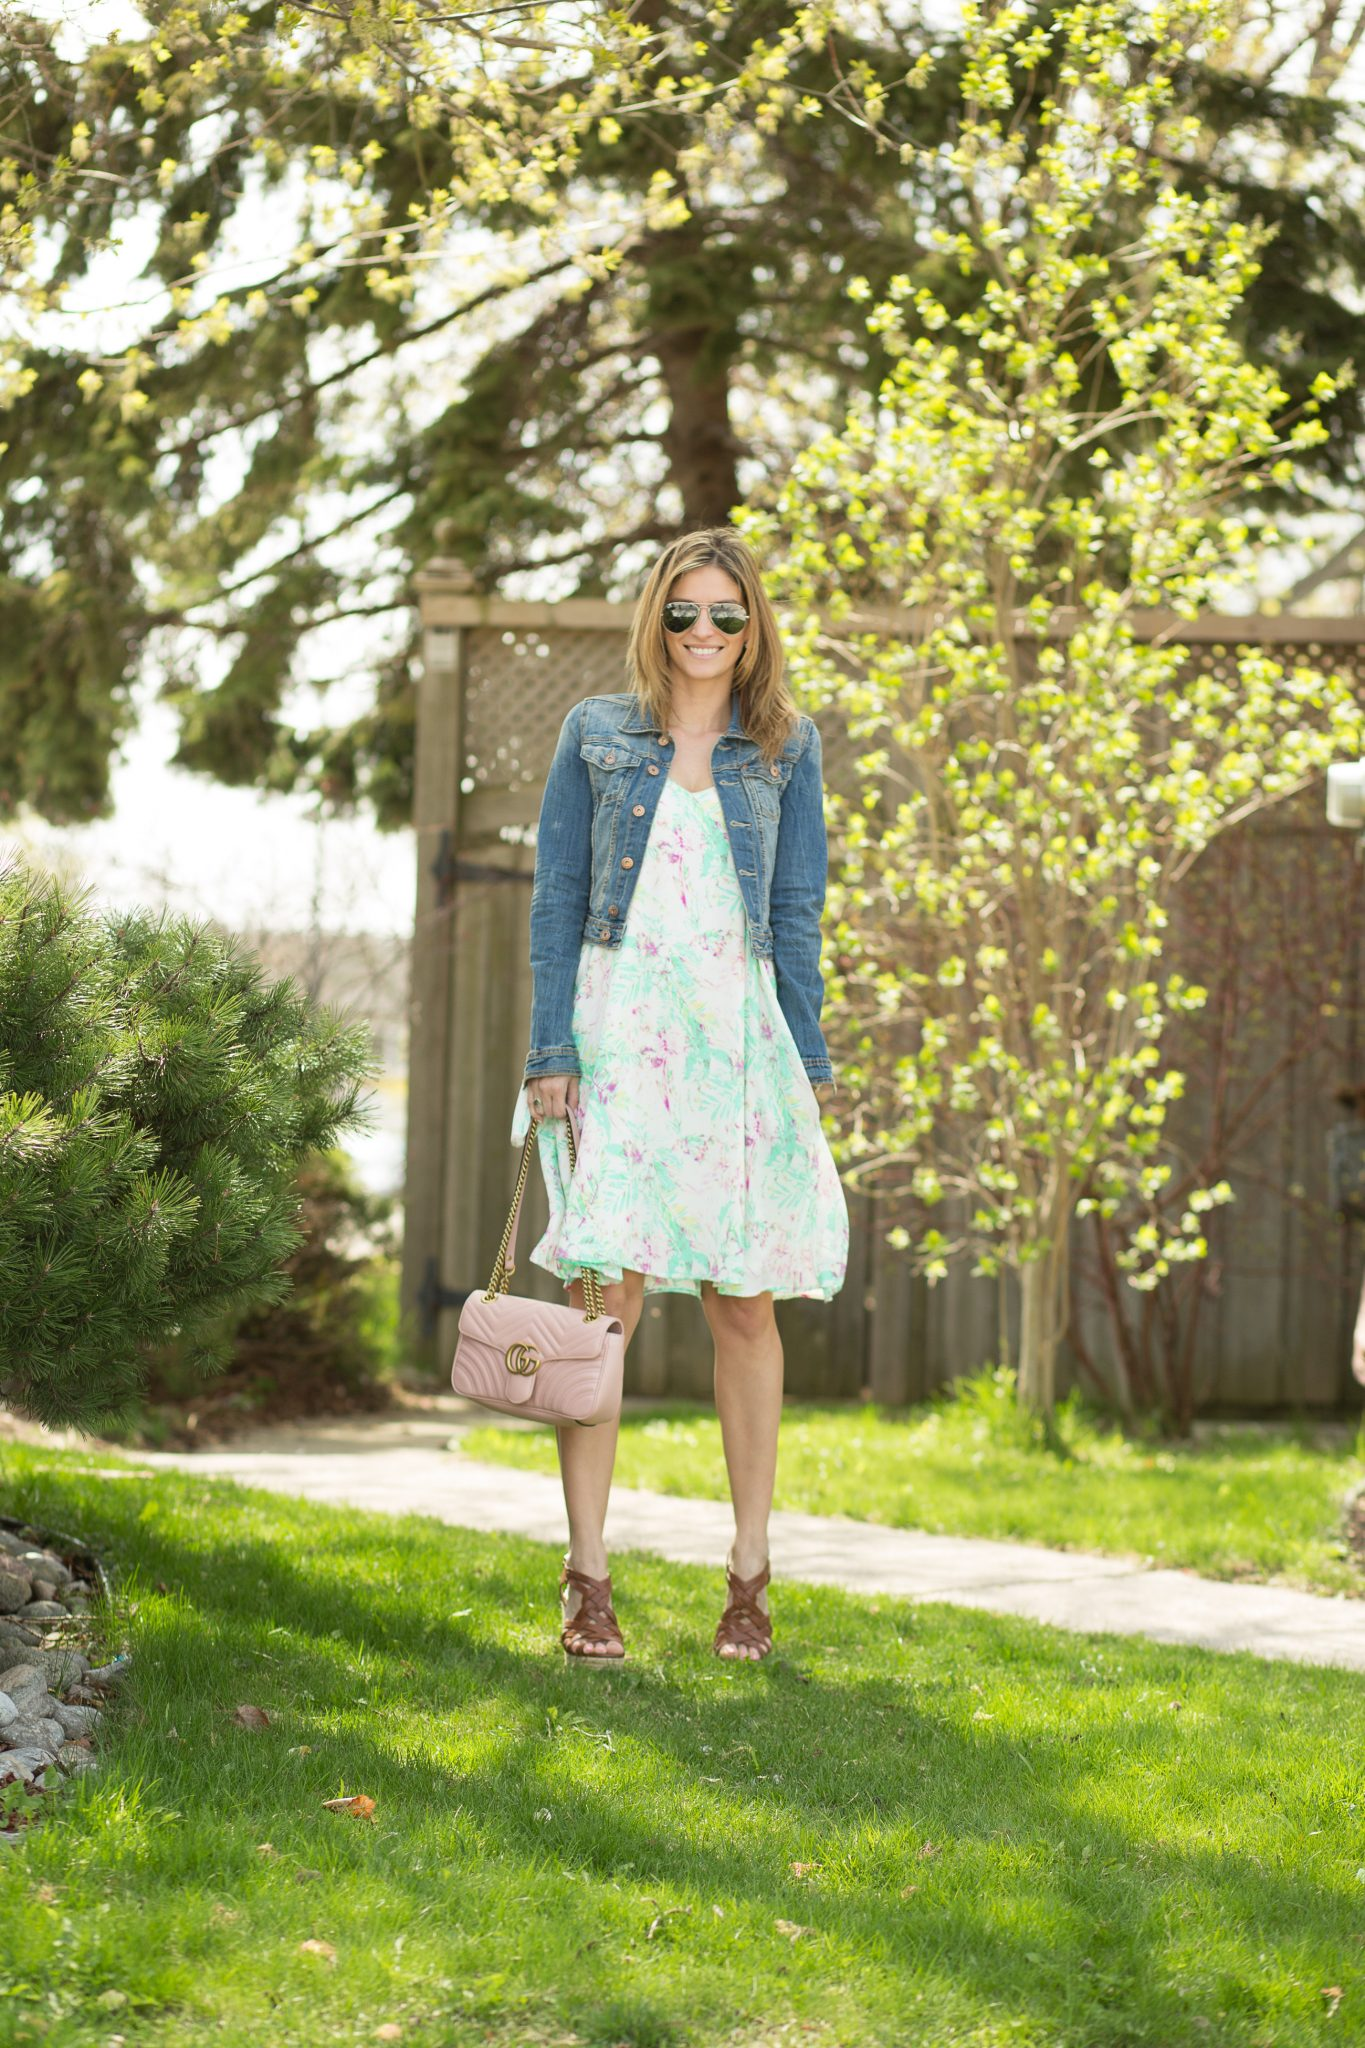 sparkleshinylove Mandy Furnis Floral dress from Pink Blush, Jean jacket from H&M, Pink Gucci bag, silver Ray-Ban sunglasses and wedges from Charlotte Russe